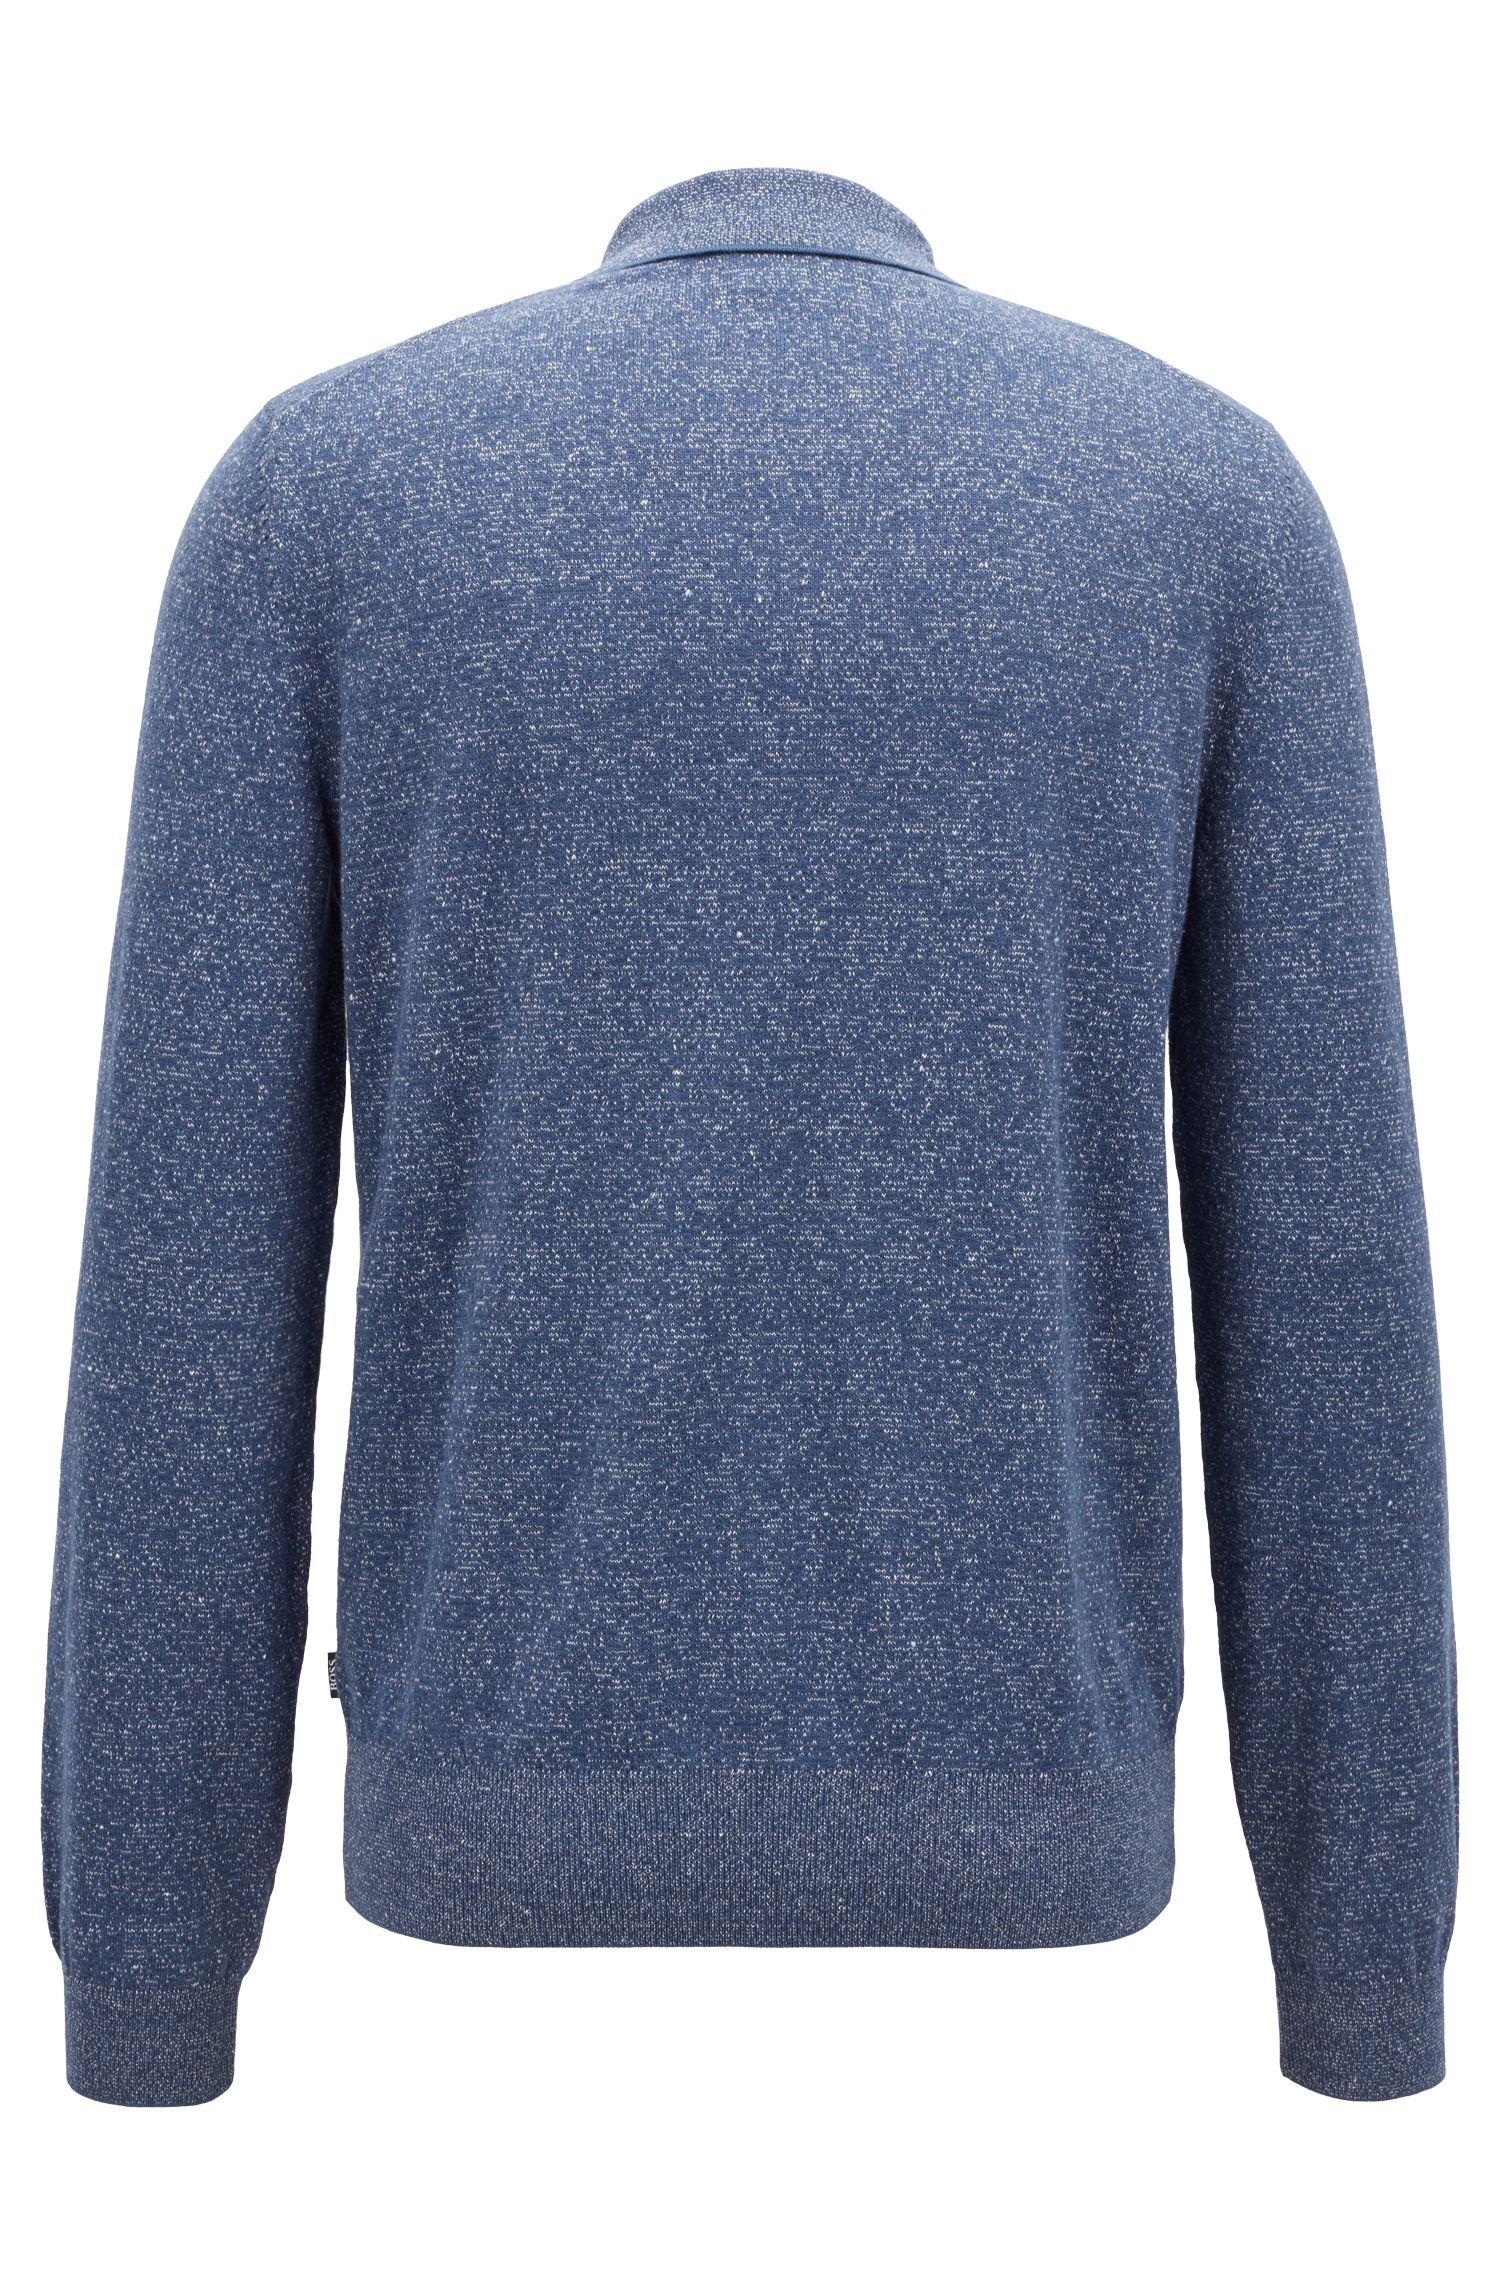 Slim-fit knitted sweater in a cotton-linen blend, Open Blue